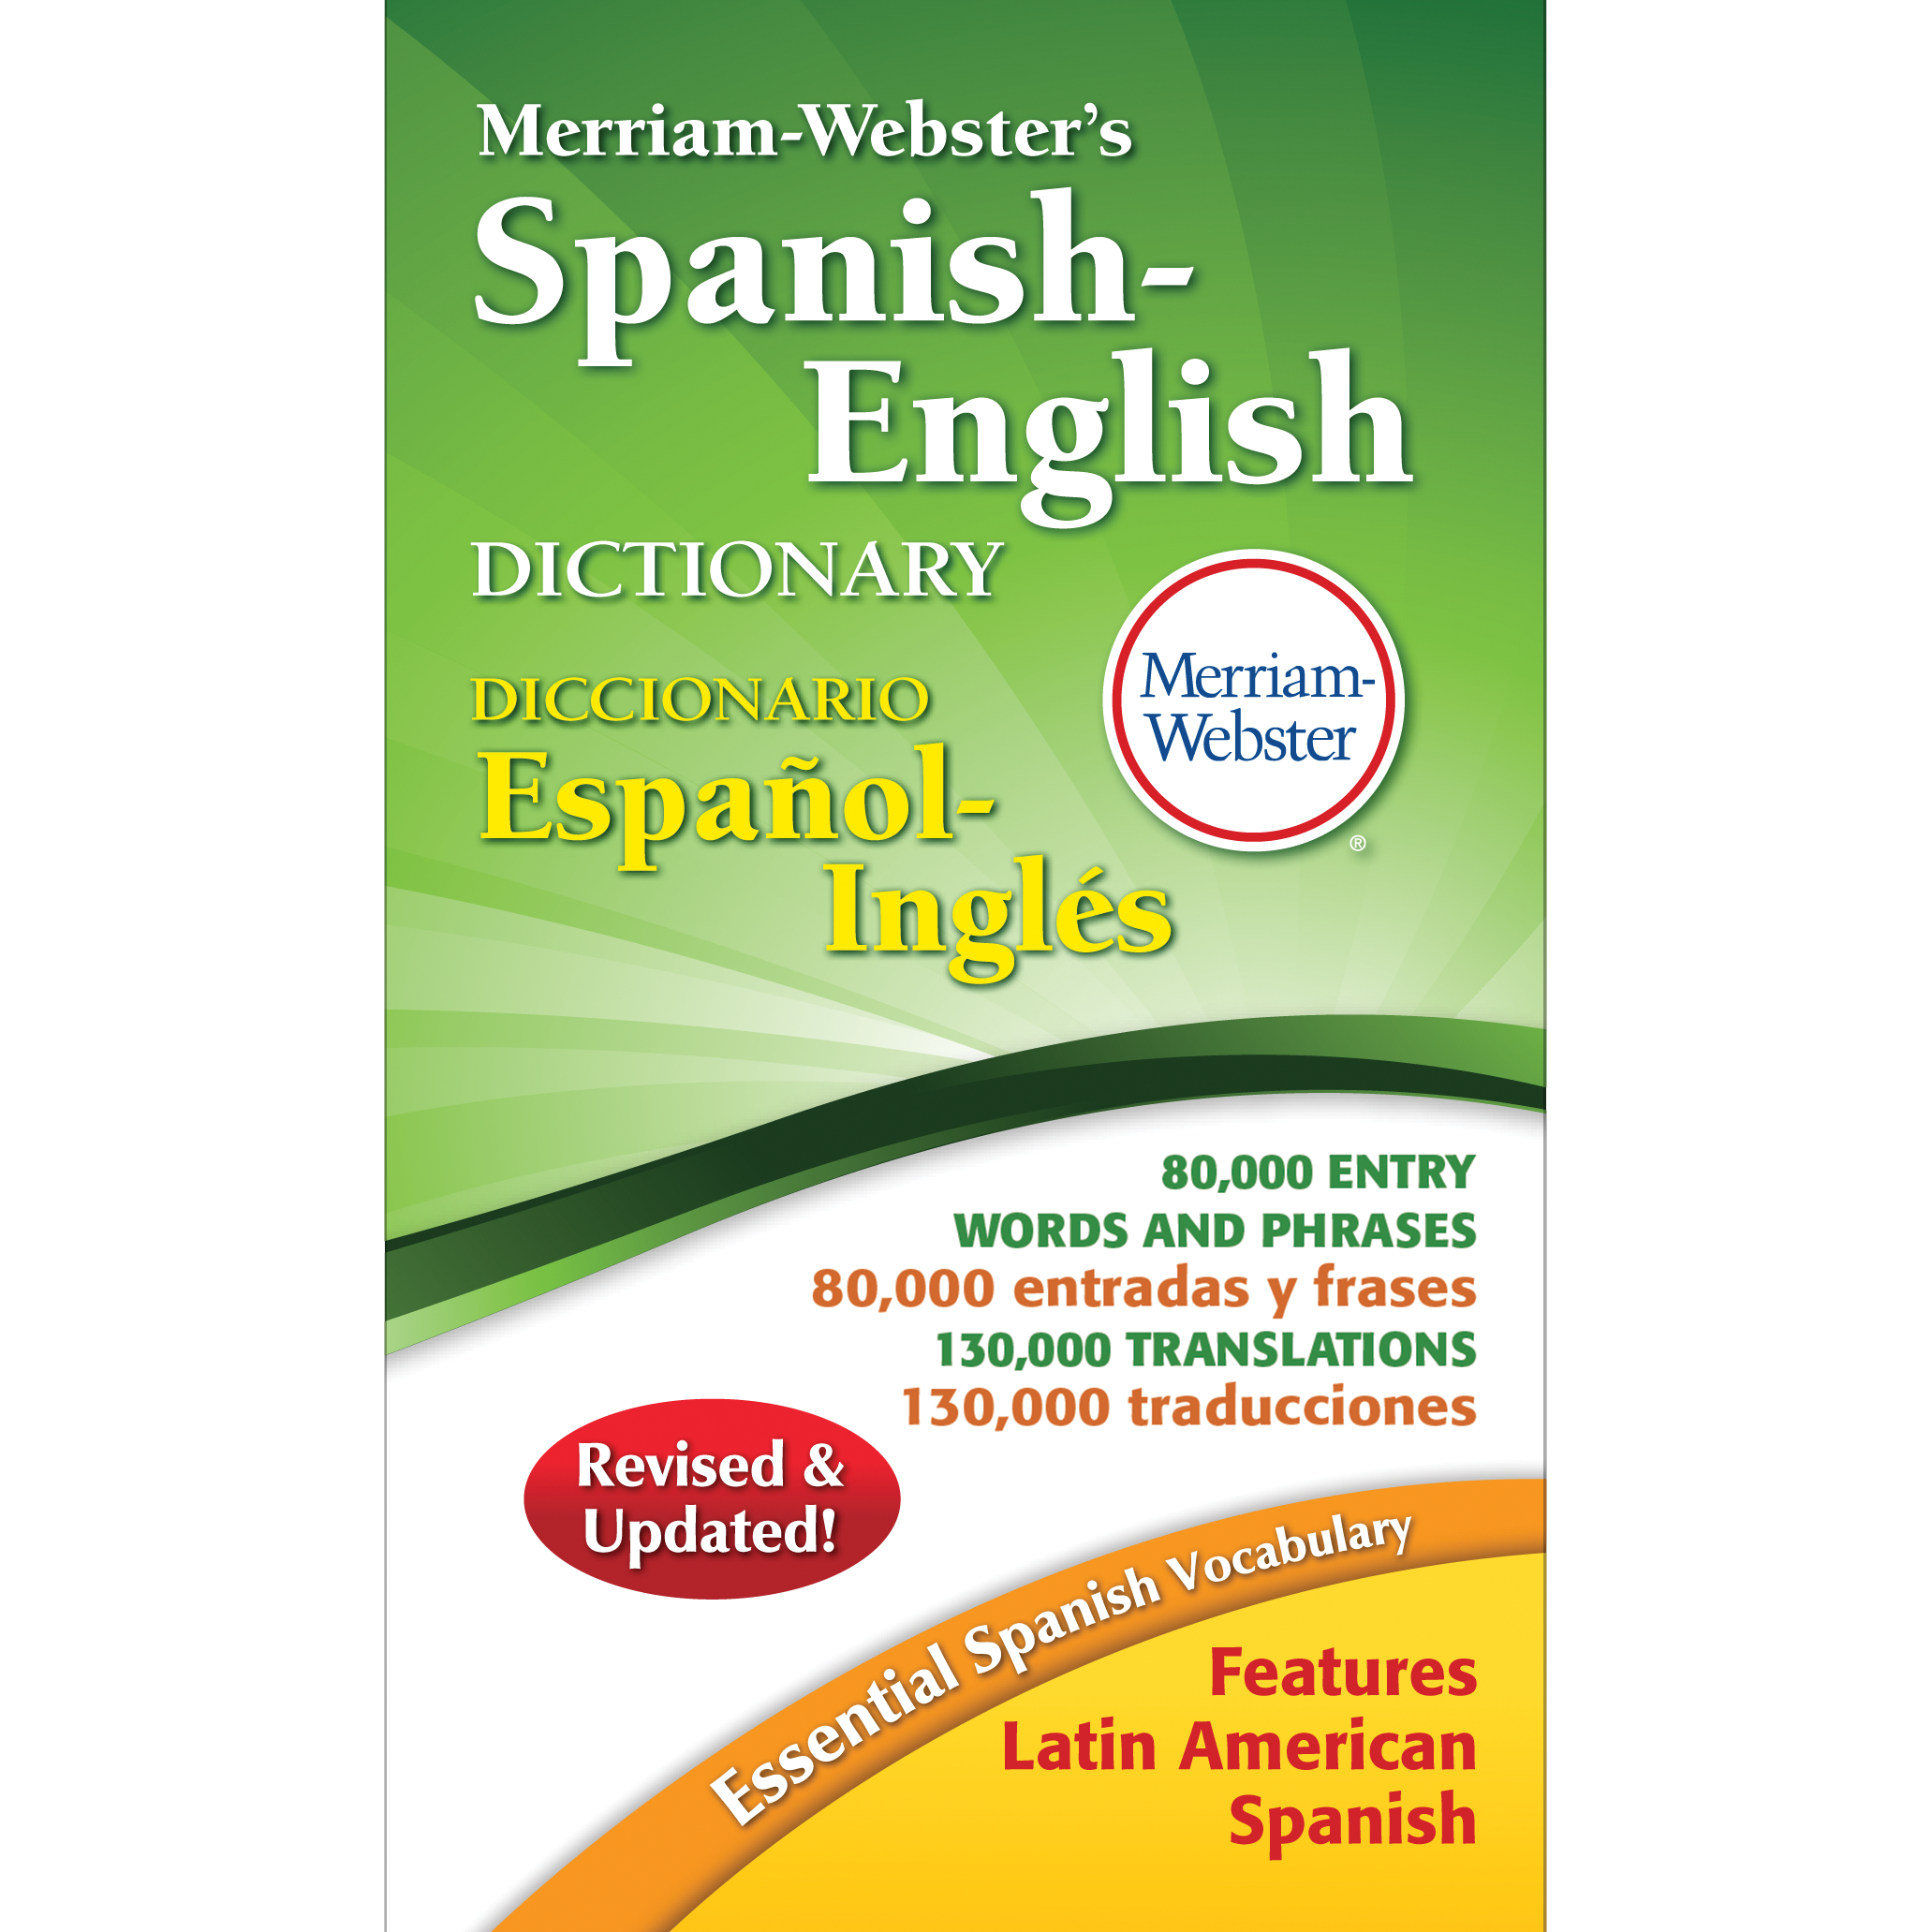 Merriam-Webster's Spanish-English Dictionary, New Copyright